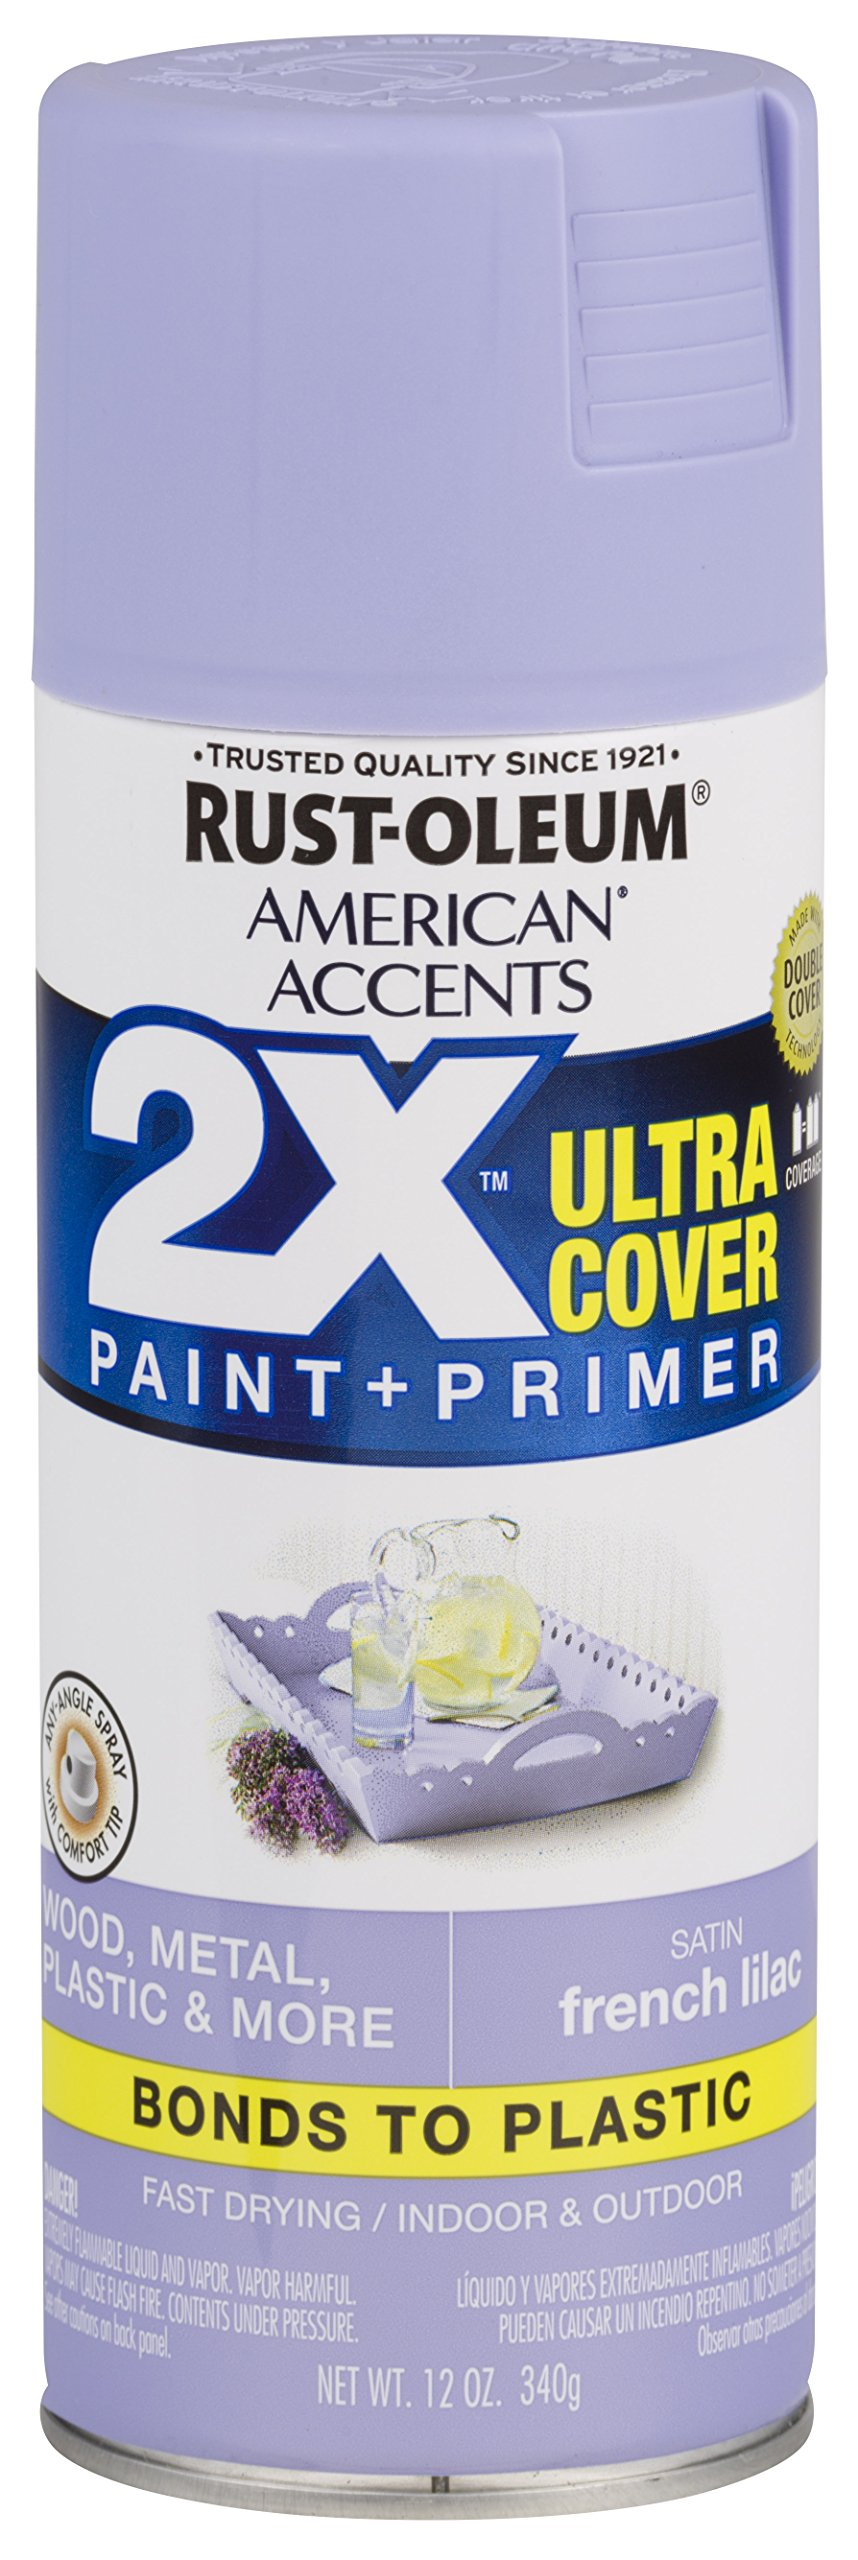 Rust-Oleum 327926 American Accents Spray Paint, 12 oz, Satin French Lilac